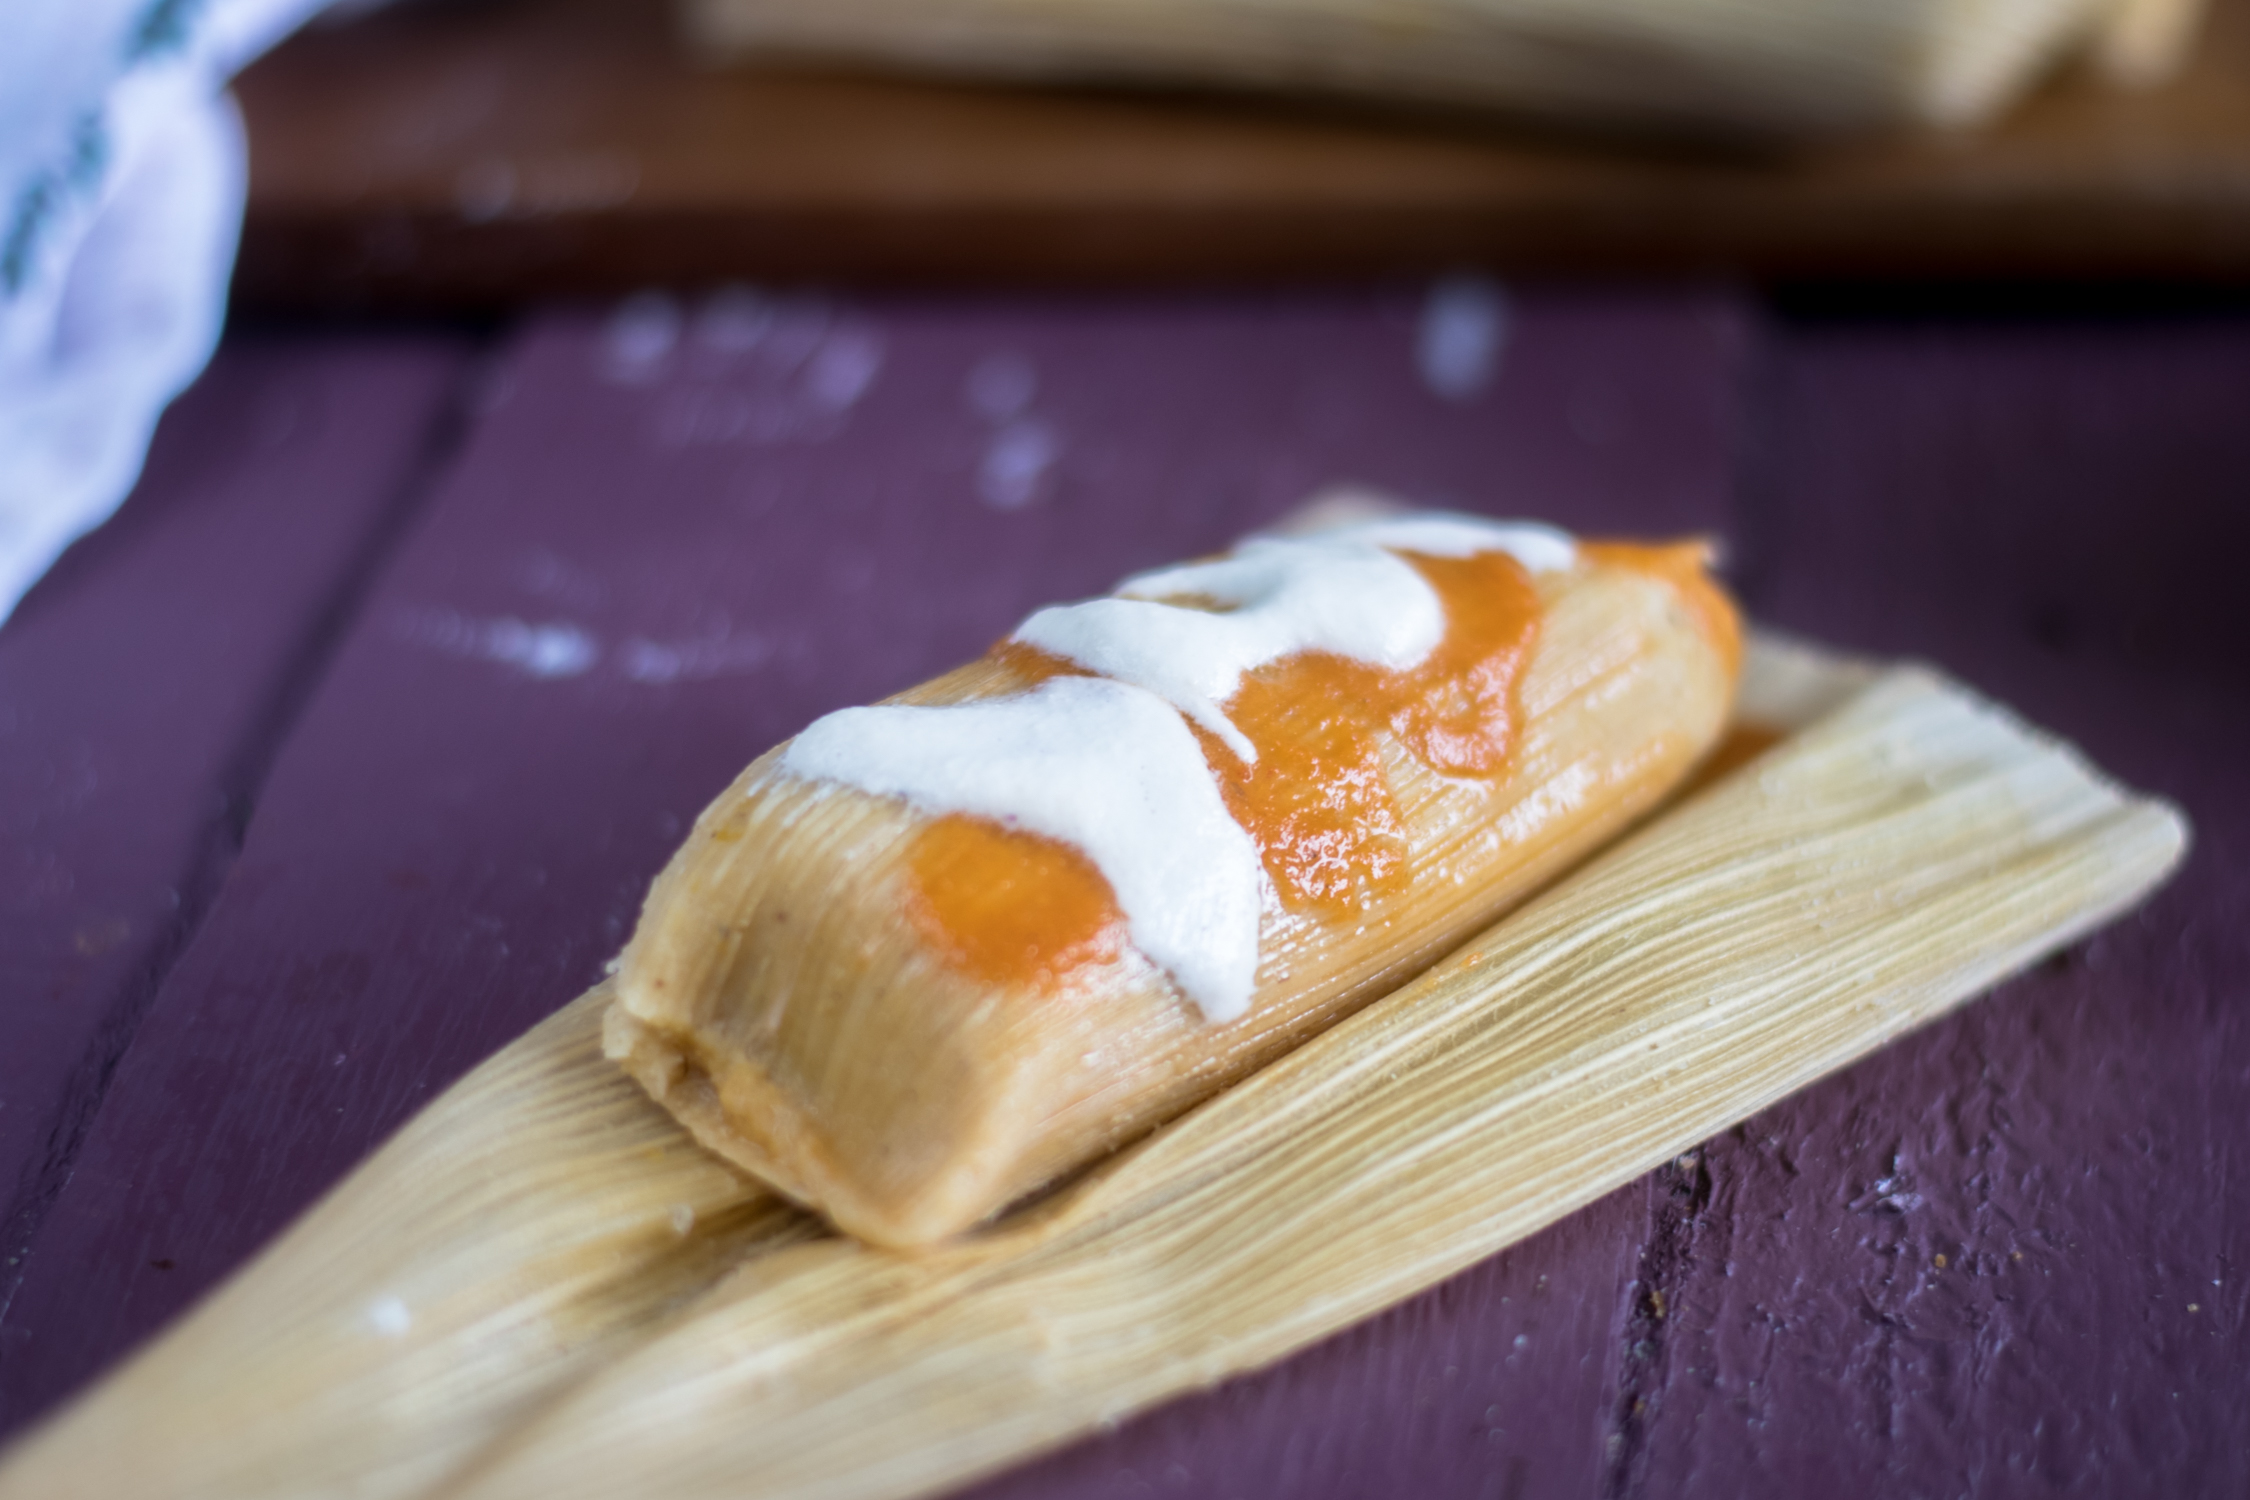 Vegan Mexican tamales filled with butternut squash and black beans.